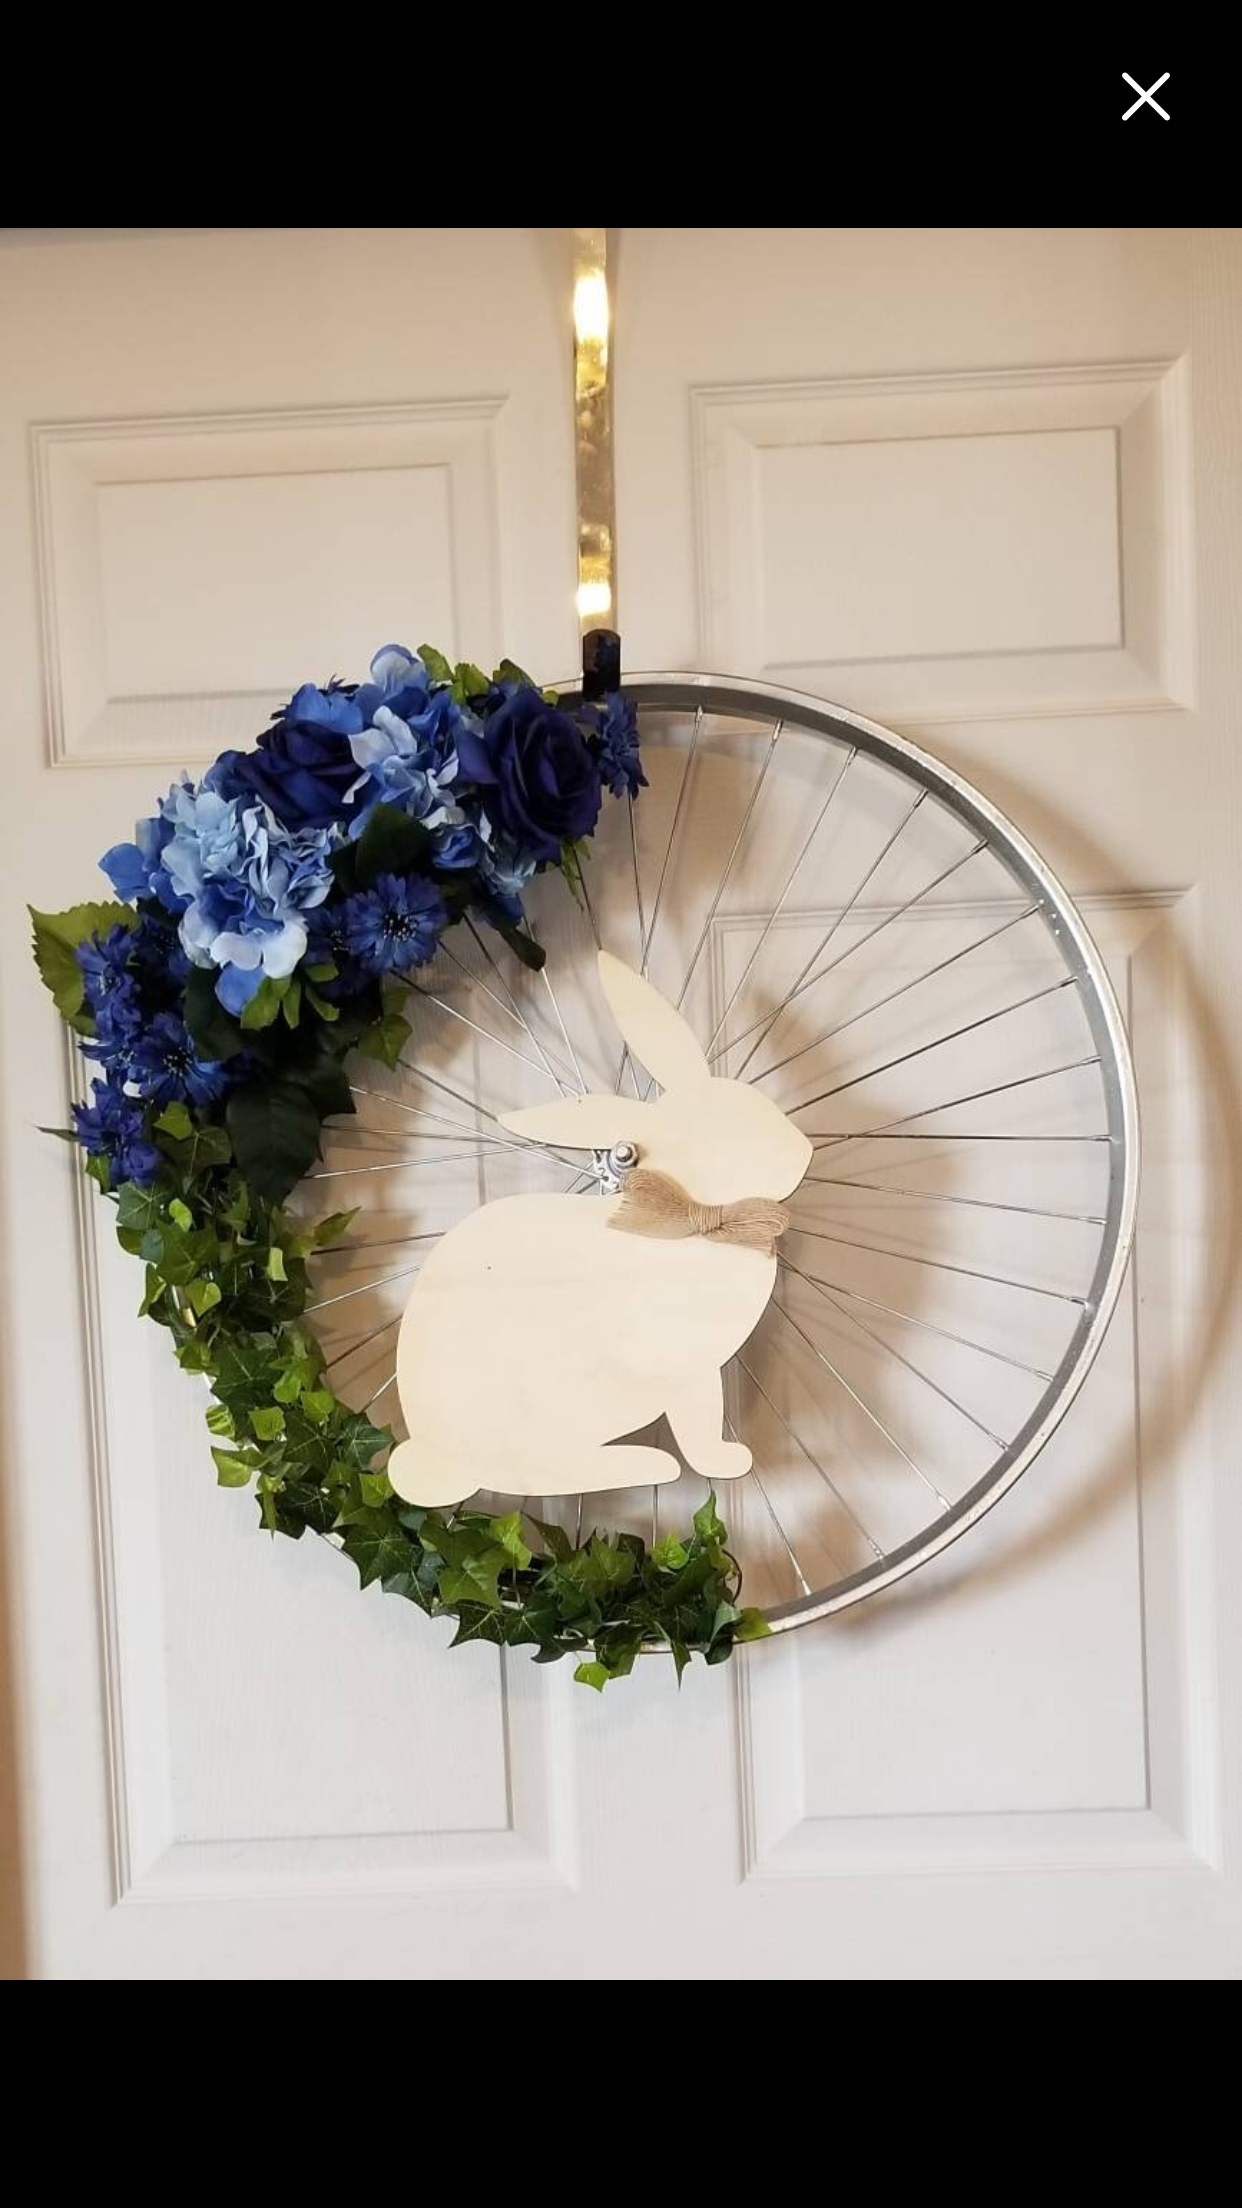 Pin By Jessica Nicks On Wreaths - Pinterest - Front